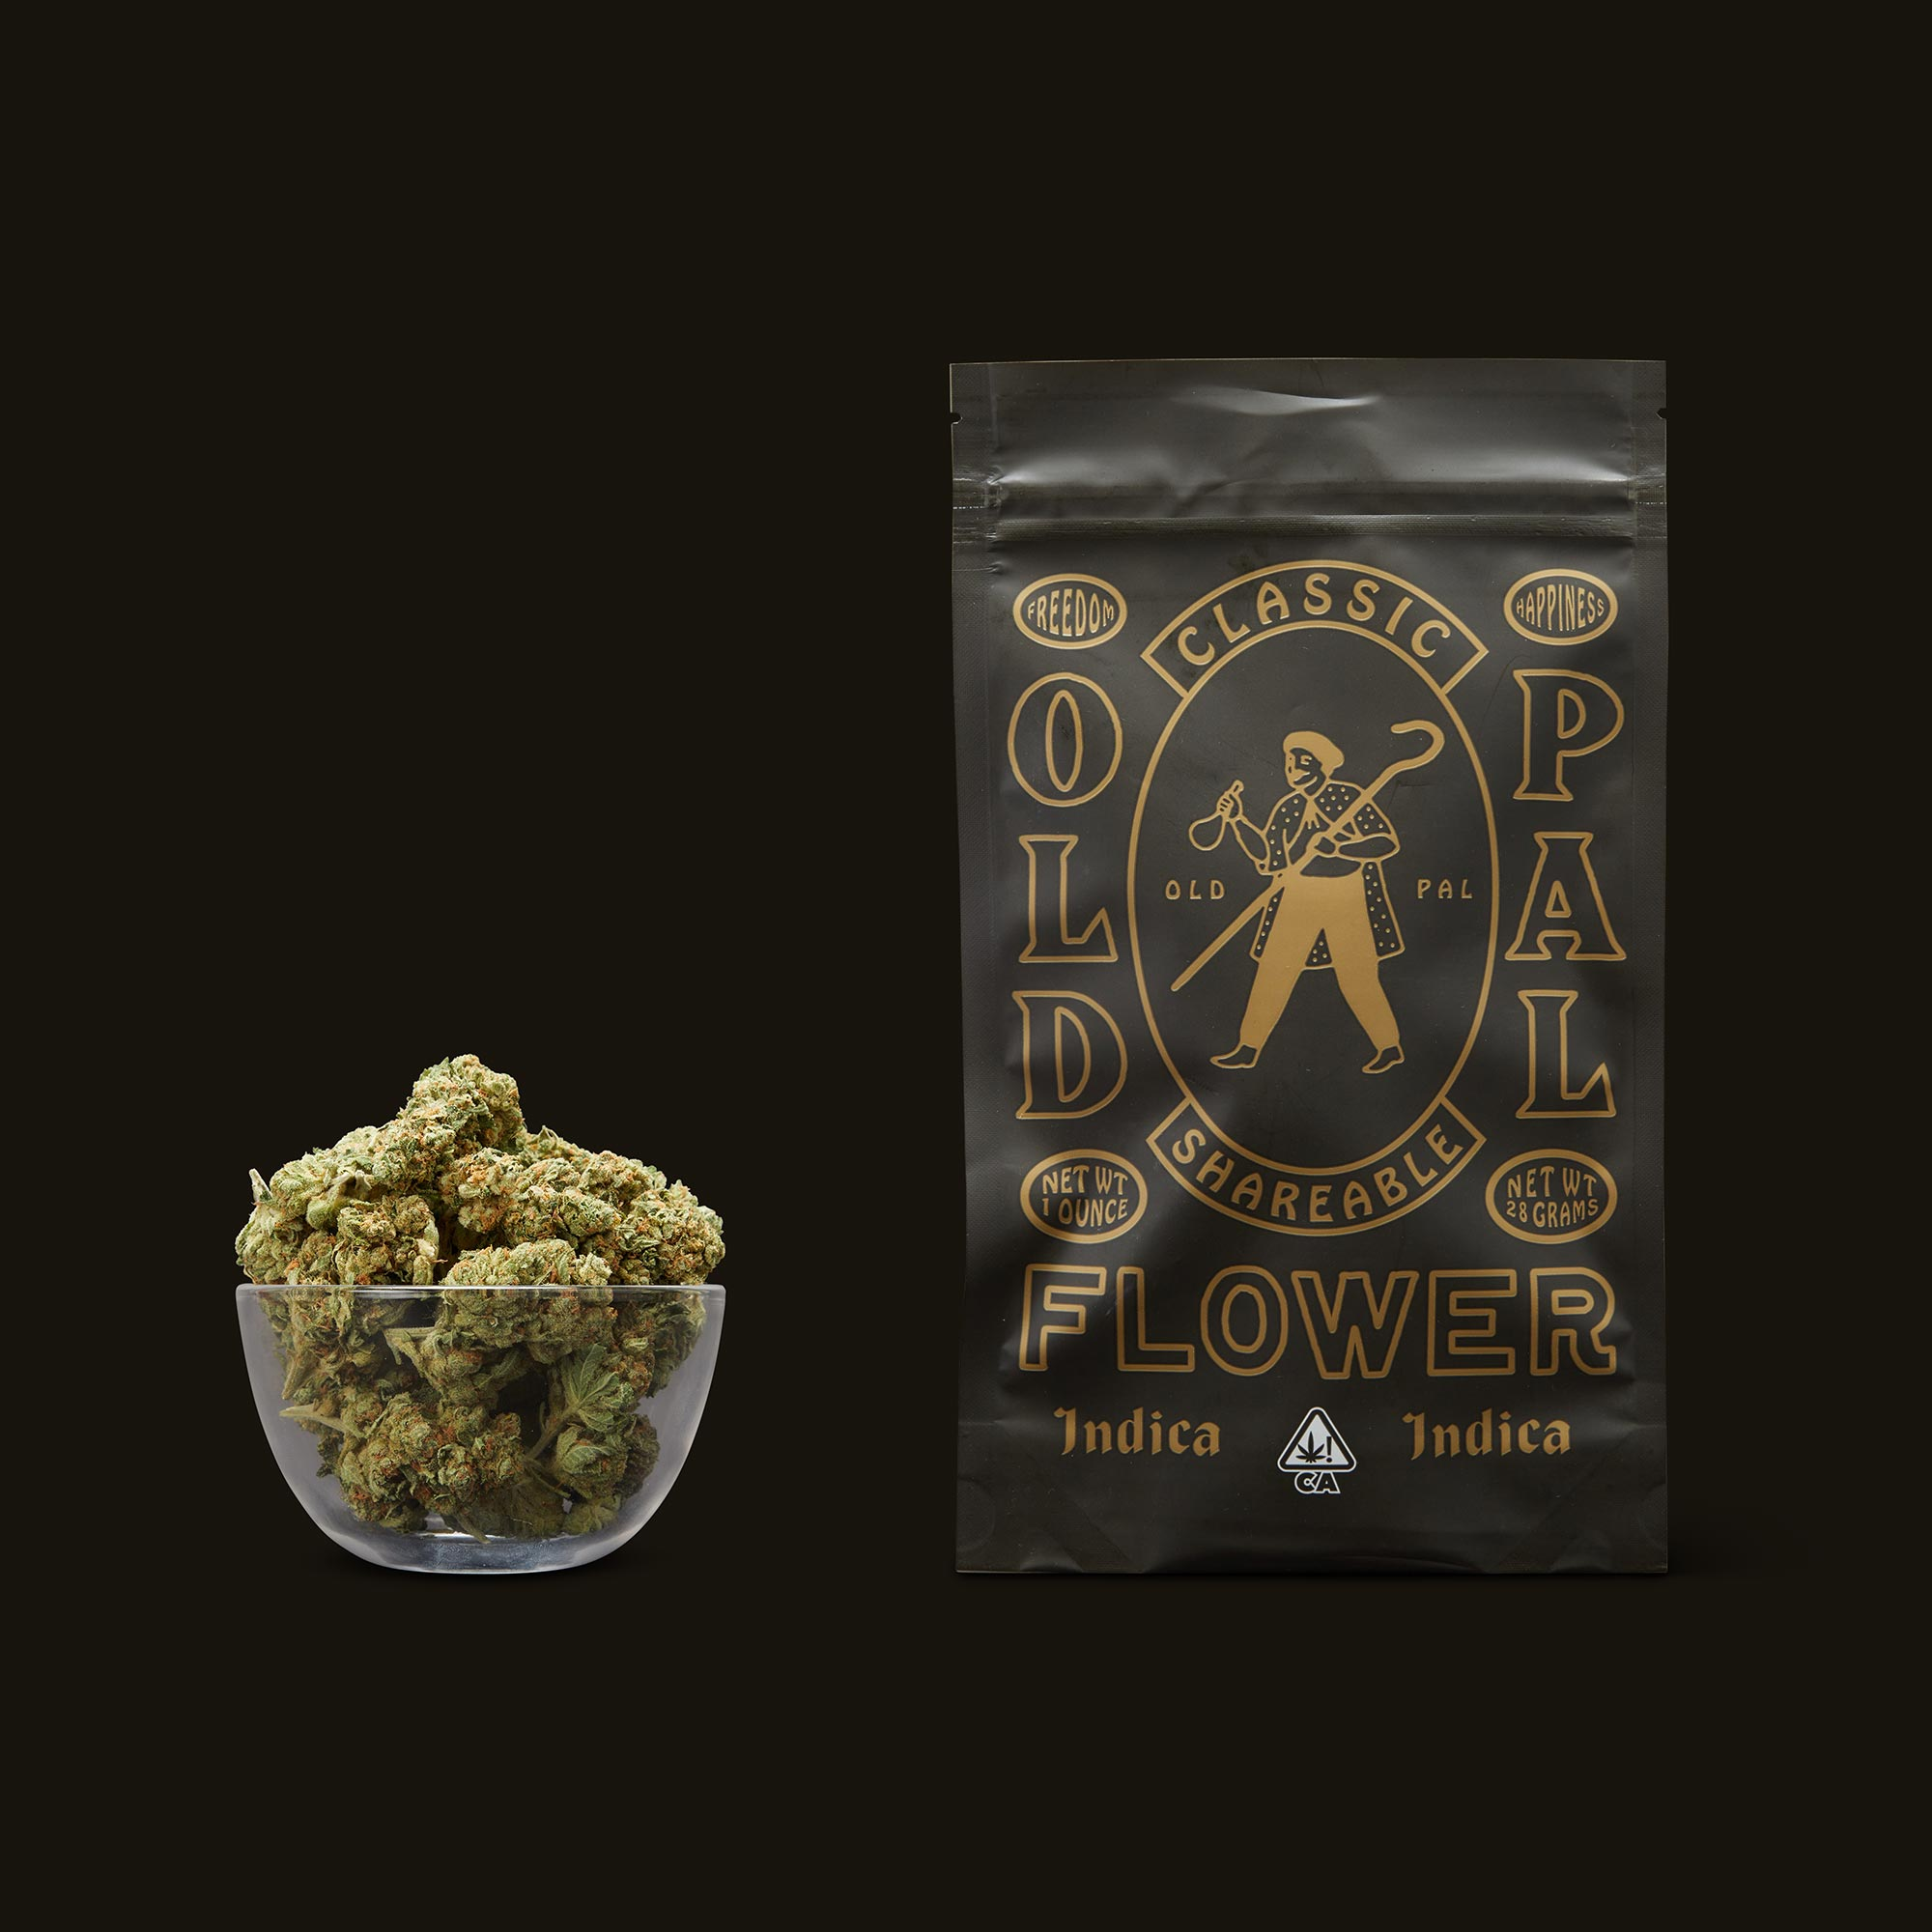 OLD PAL Indica 1 Ounce